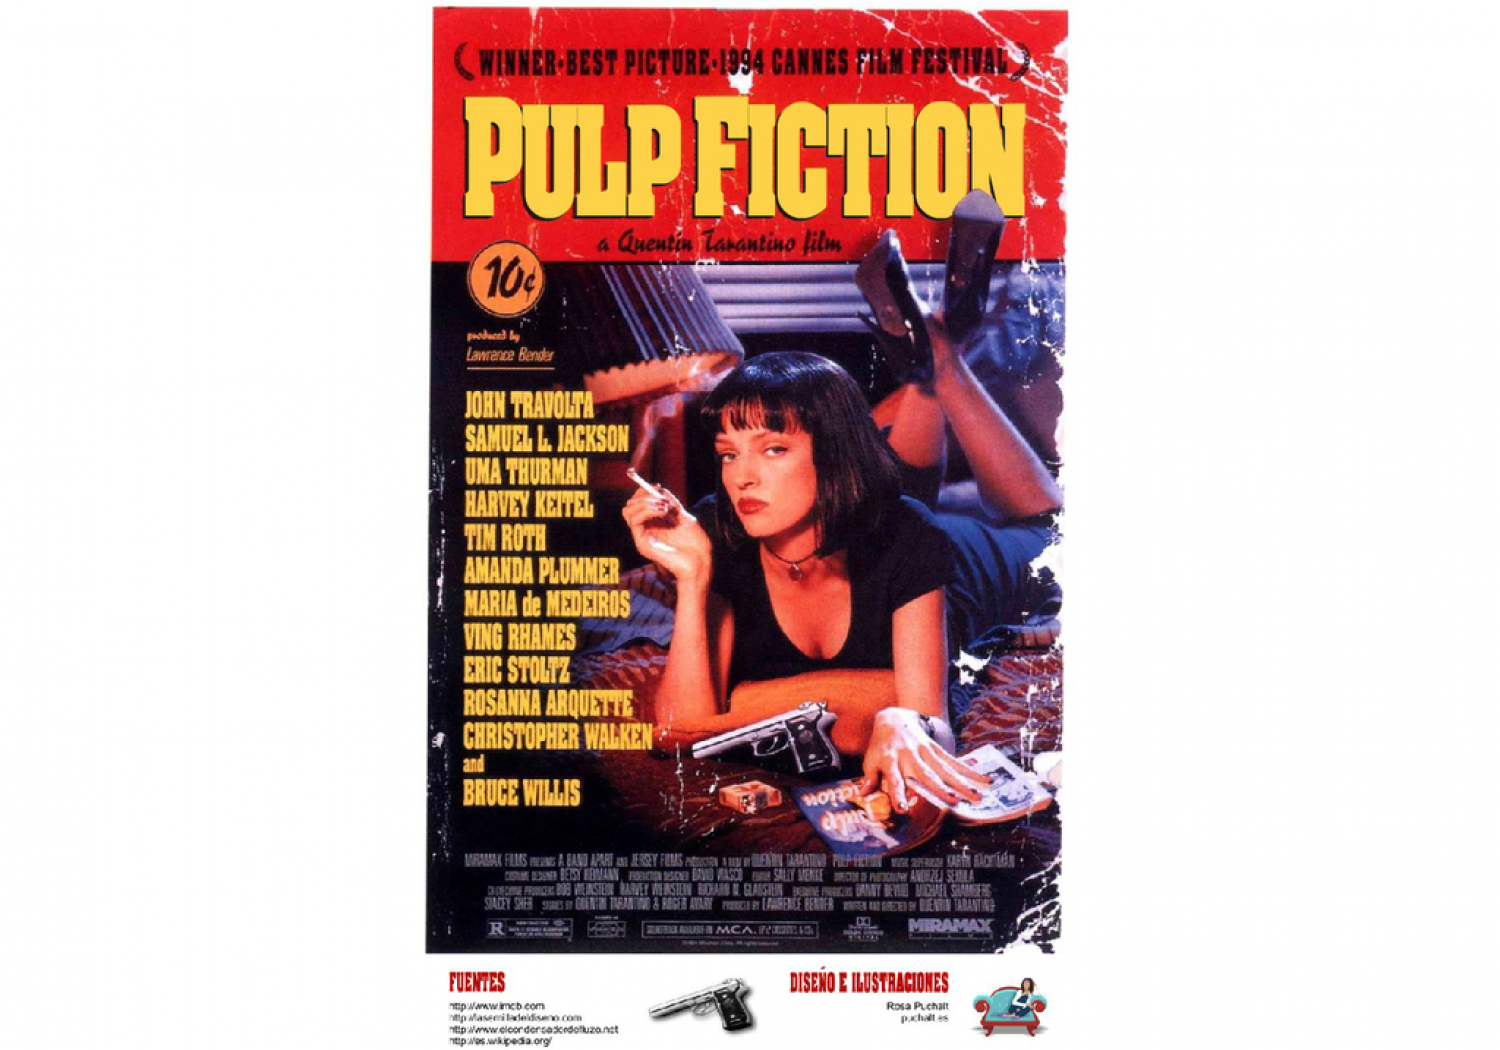 pulp fiction essay Essay on pulp fiction, by quentin tarantino - the movie pulp fiction, directed by quentin tarantino, contains violence, sex and drugs but is an underlying religious film the five main characters either follow the lord and are rewarded or they follow the devil and are punished.